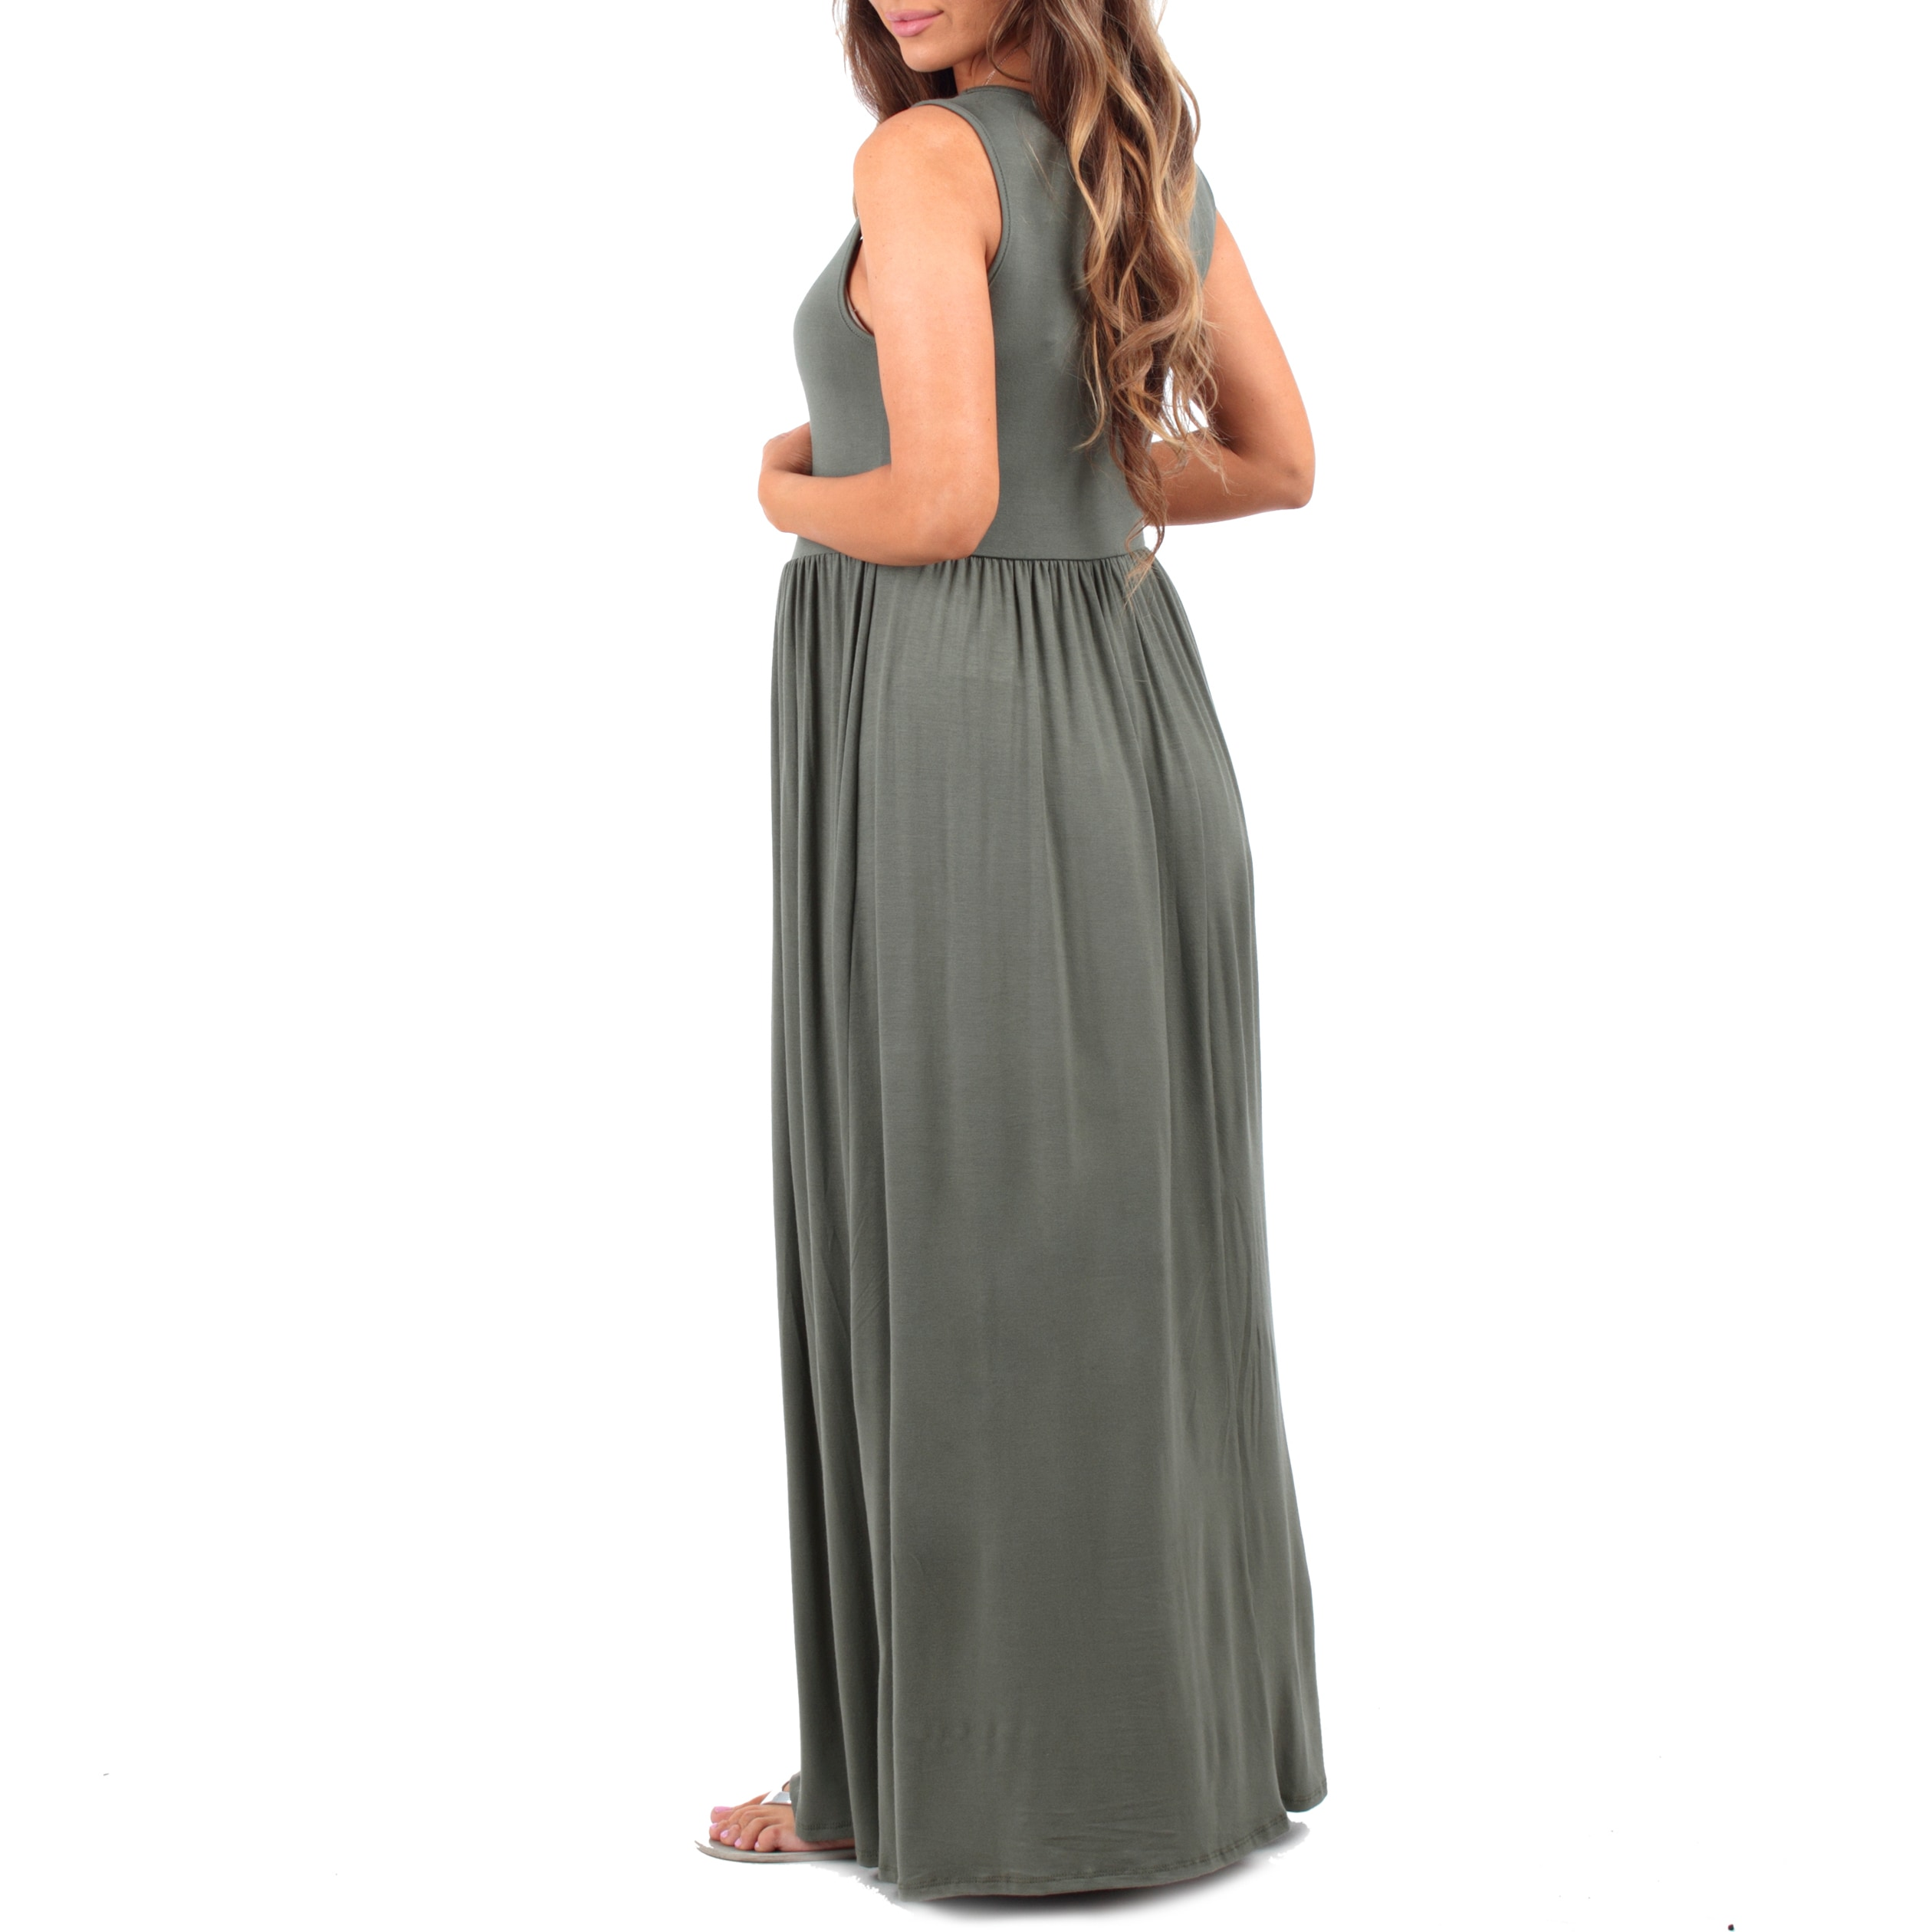 Mother bee womens ruched sleeveless maternity dress free mother bee womens ruched sleeveless maternity dress free shipping on orders over 45 overstock 21293615 ombrellifo Images